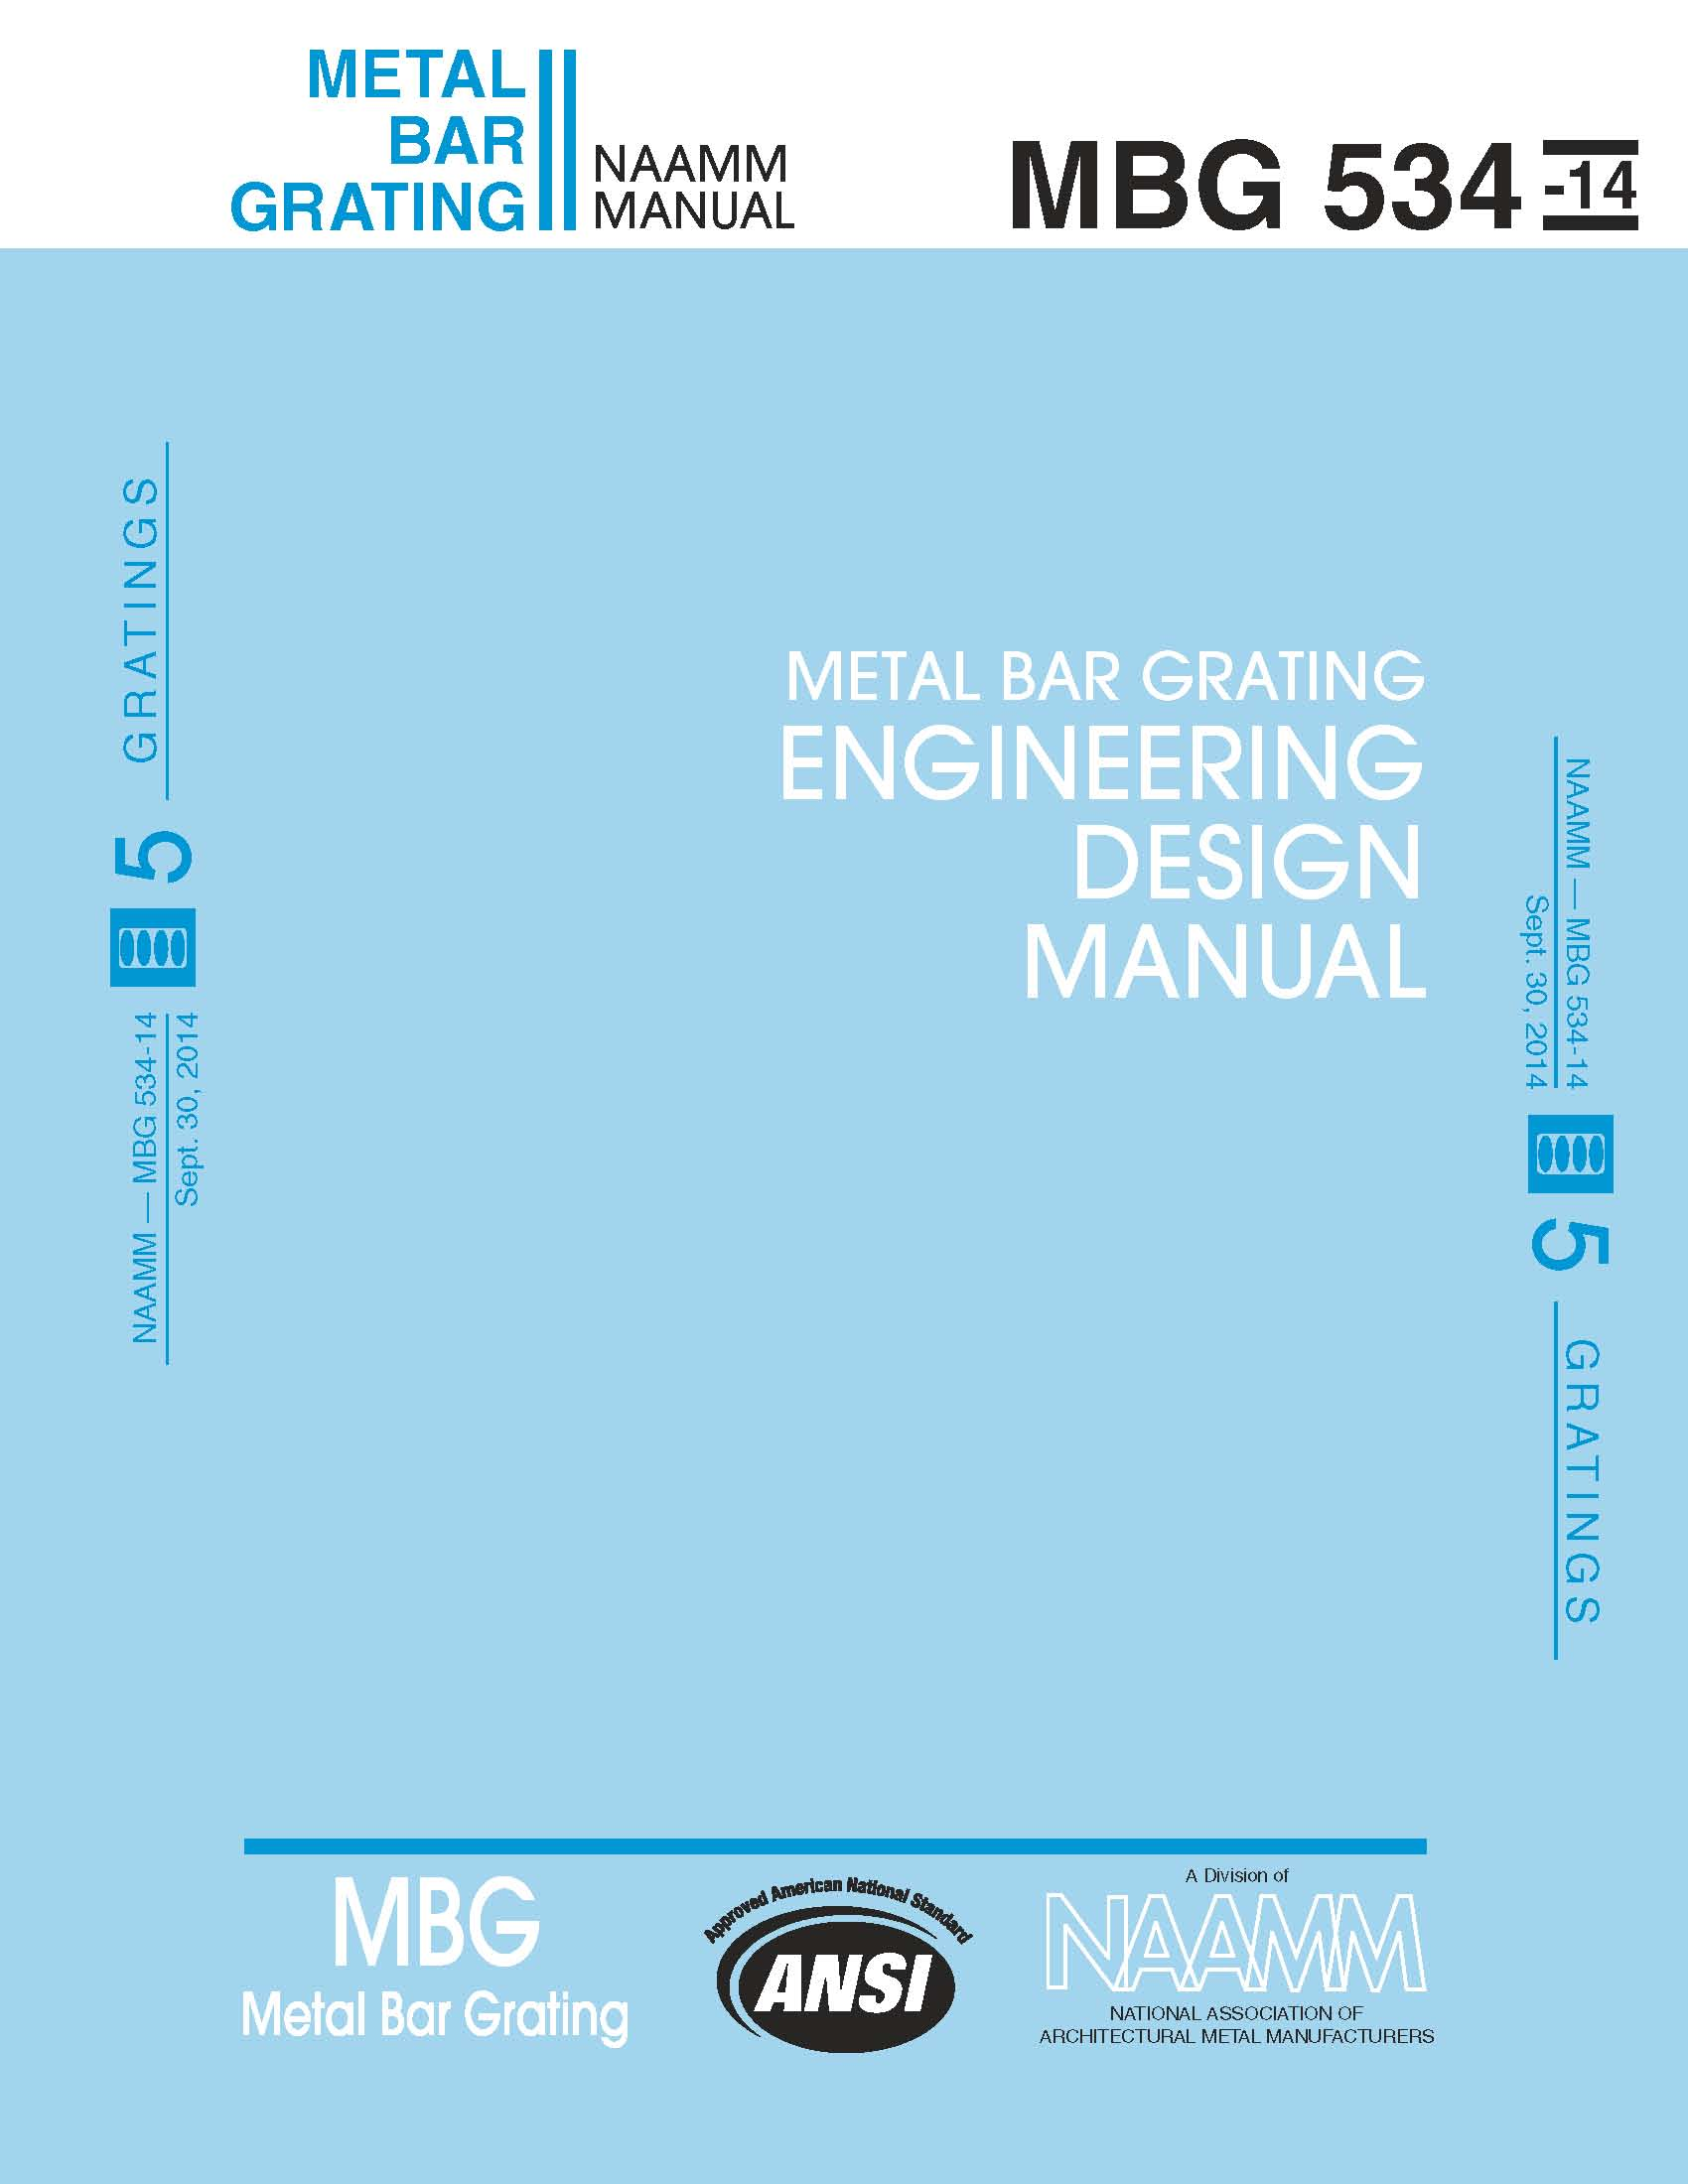 Metal Bar Grating Engineering Design Manual